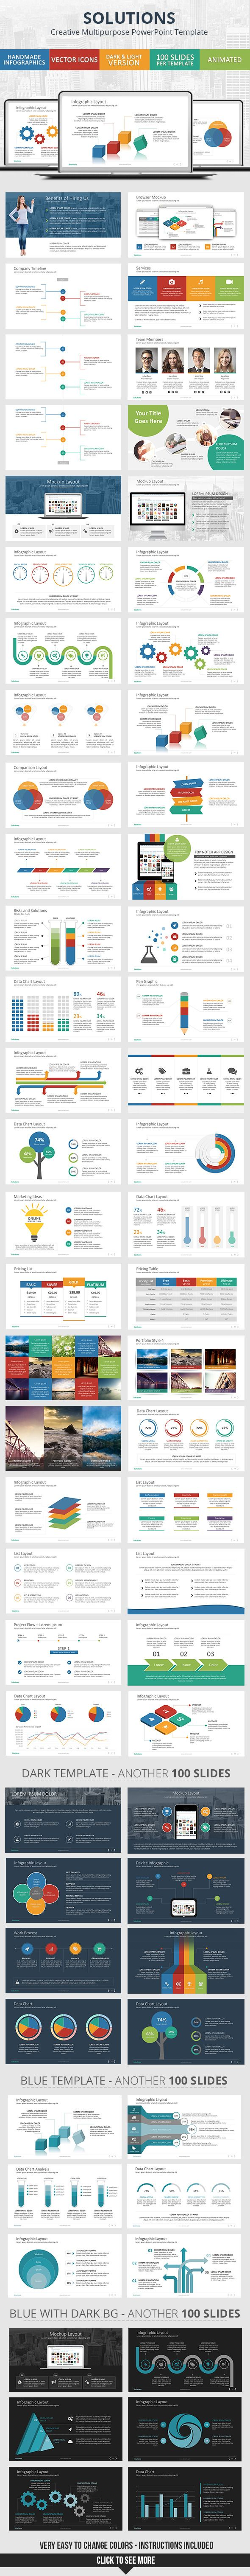 PowerPoint Presentation Template #powerpoint #powerpointtemplate Download: http://graphicriver.net/item/solutions-powerpoint-presentation-template/10284842?ref=ksioks